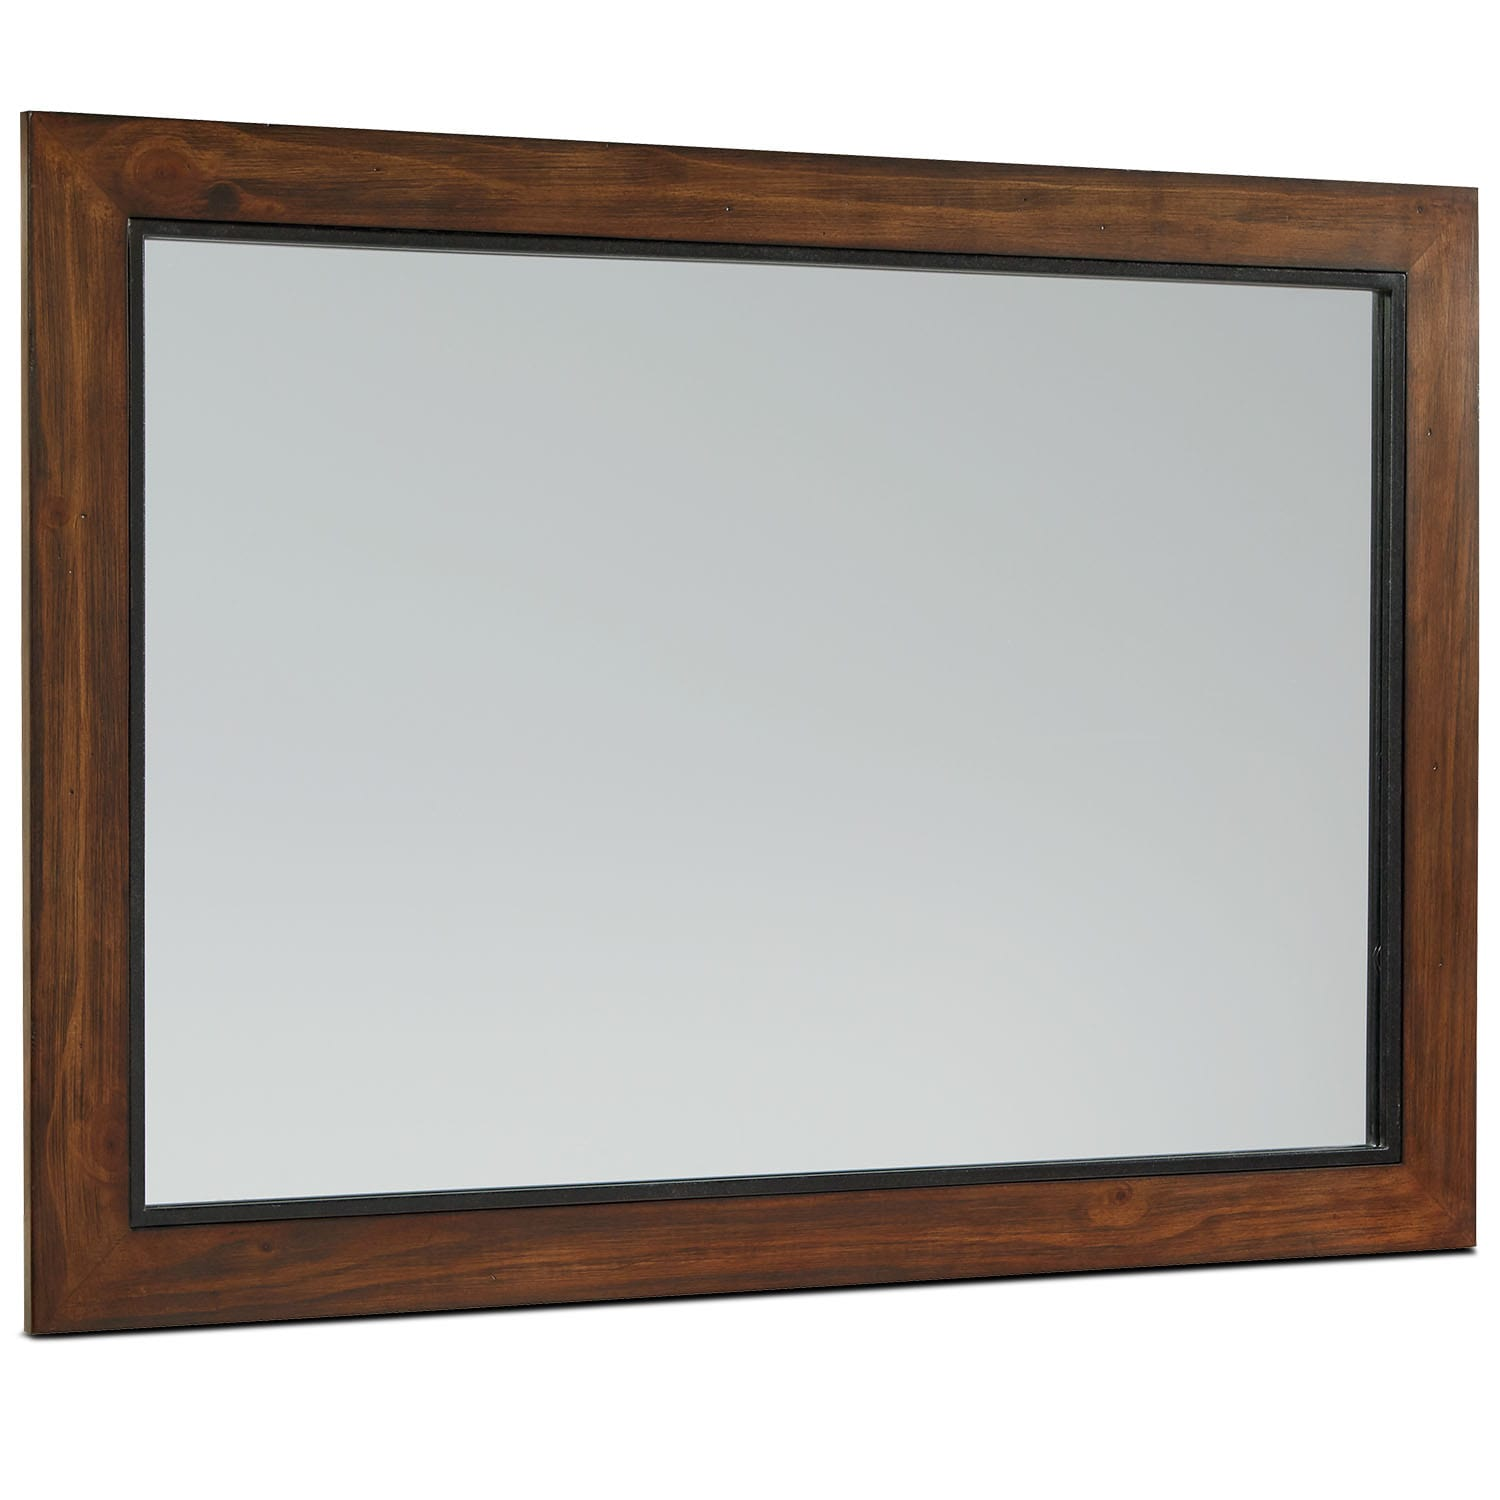 Value city furniture wall mirrors